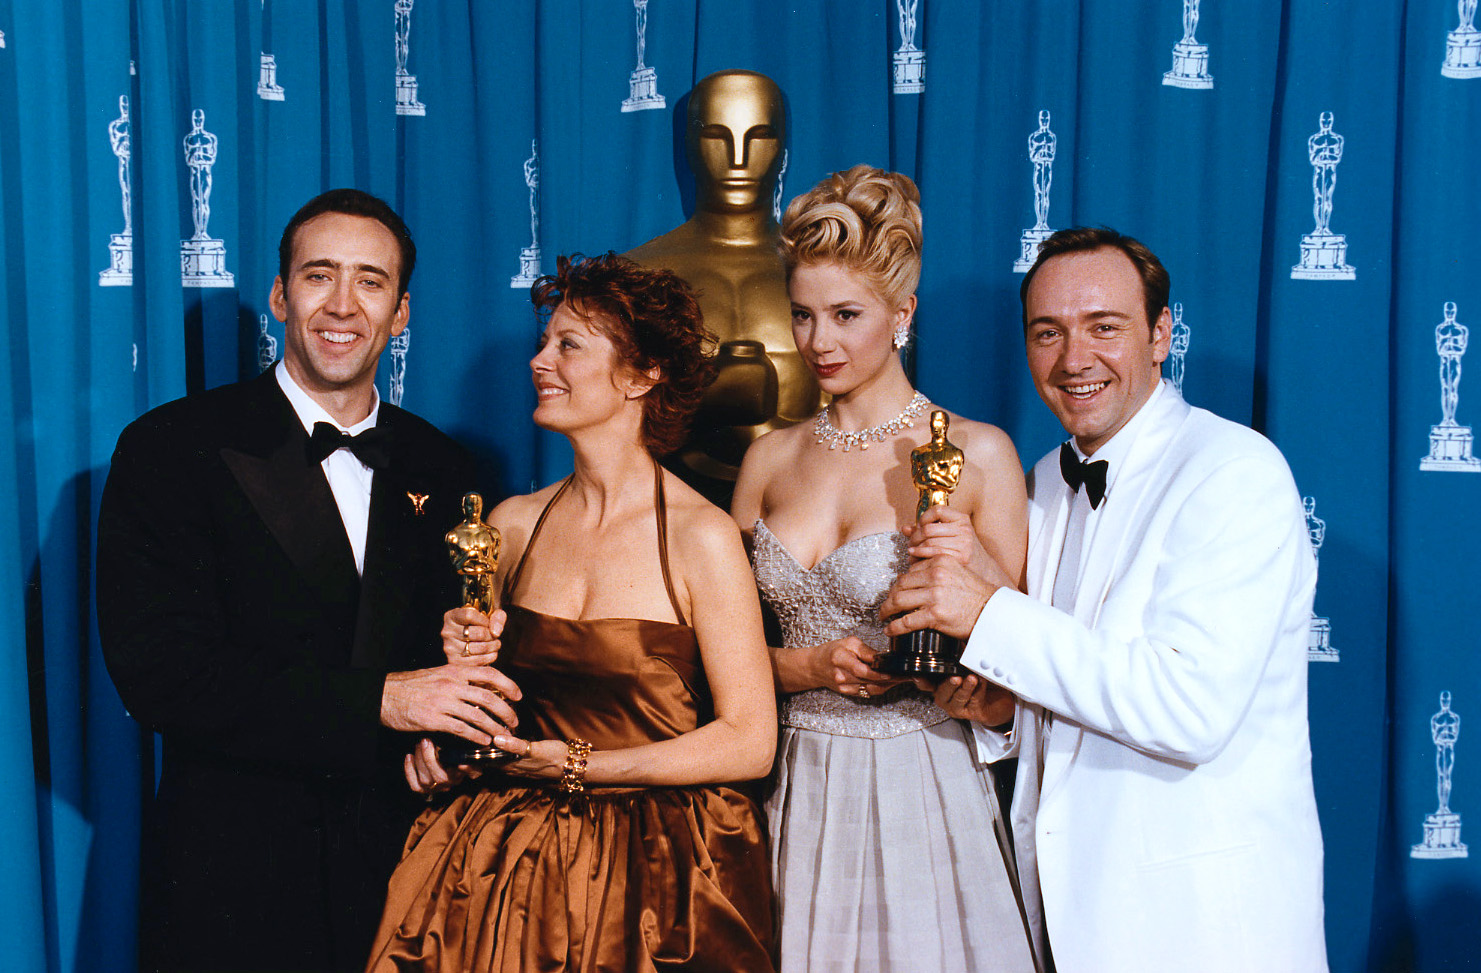 the night new jersey swept the oscars almost